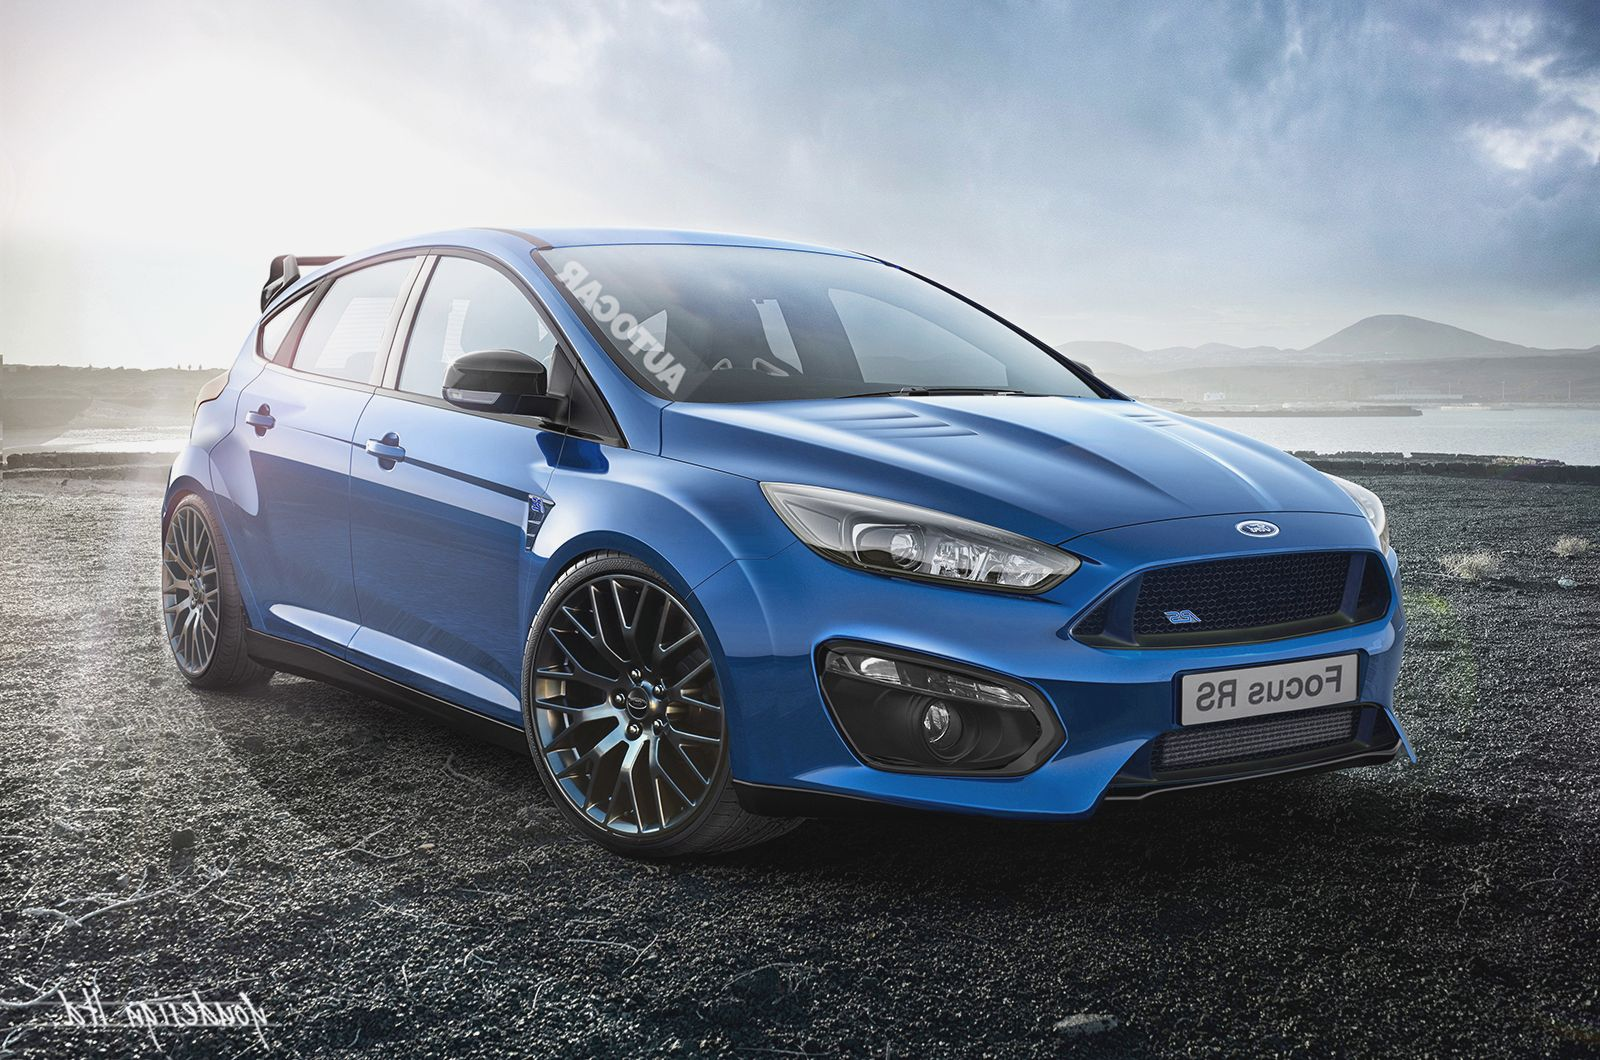 Ford Focus RS Wallpaper 2016 Full HD Pictures 1600x1060